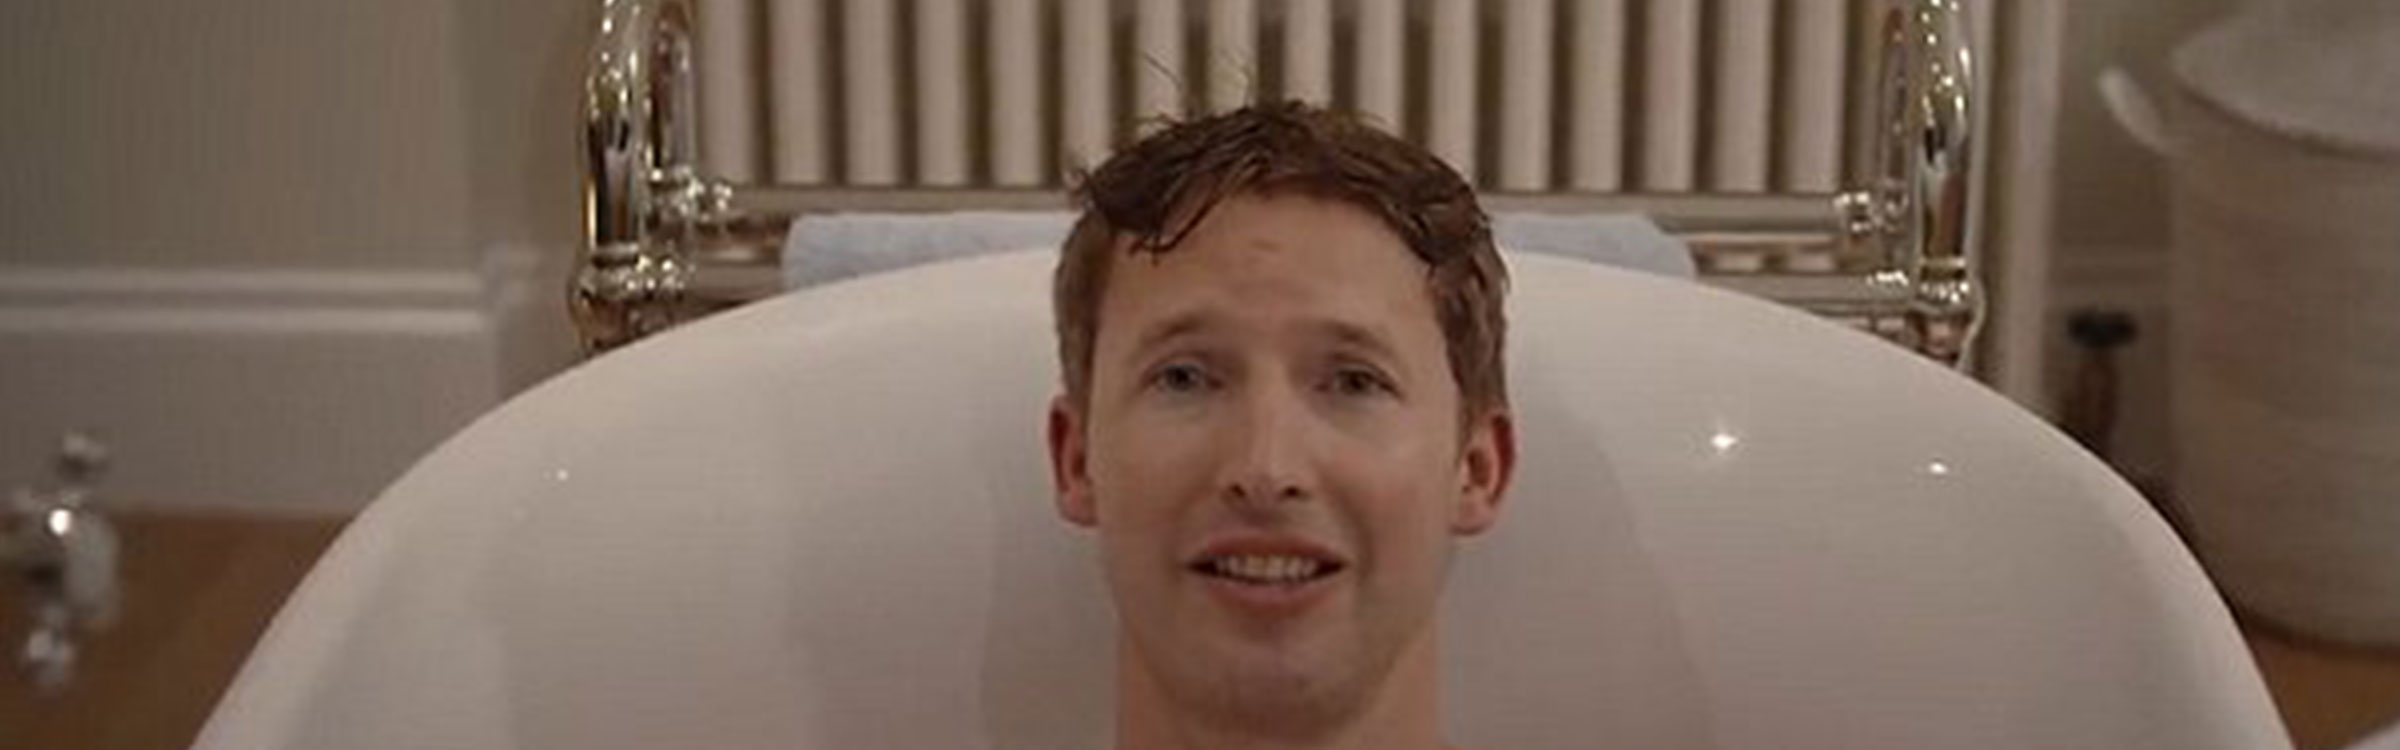 James blunt header deze